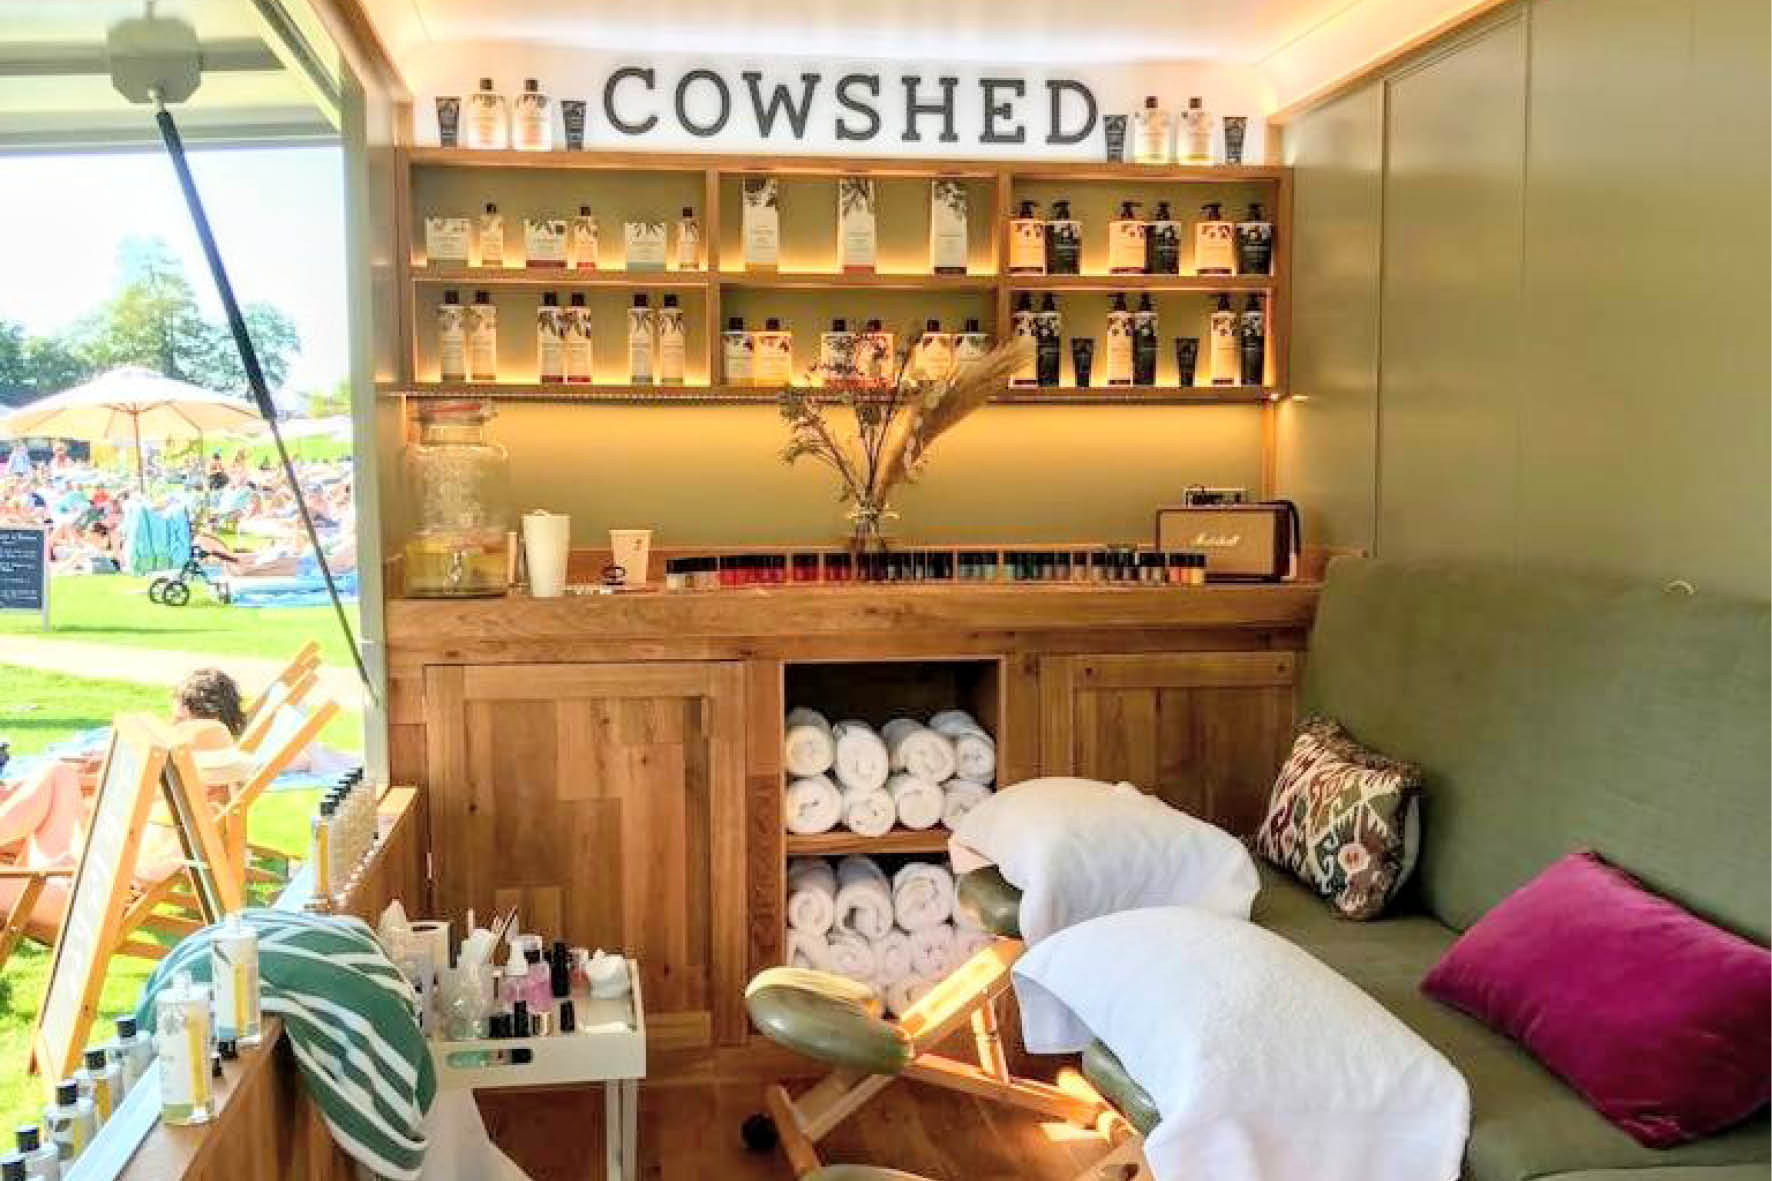 bus_business_2019_cowshed_12.jpg